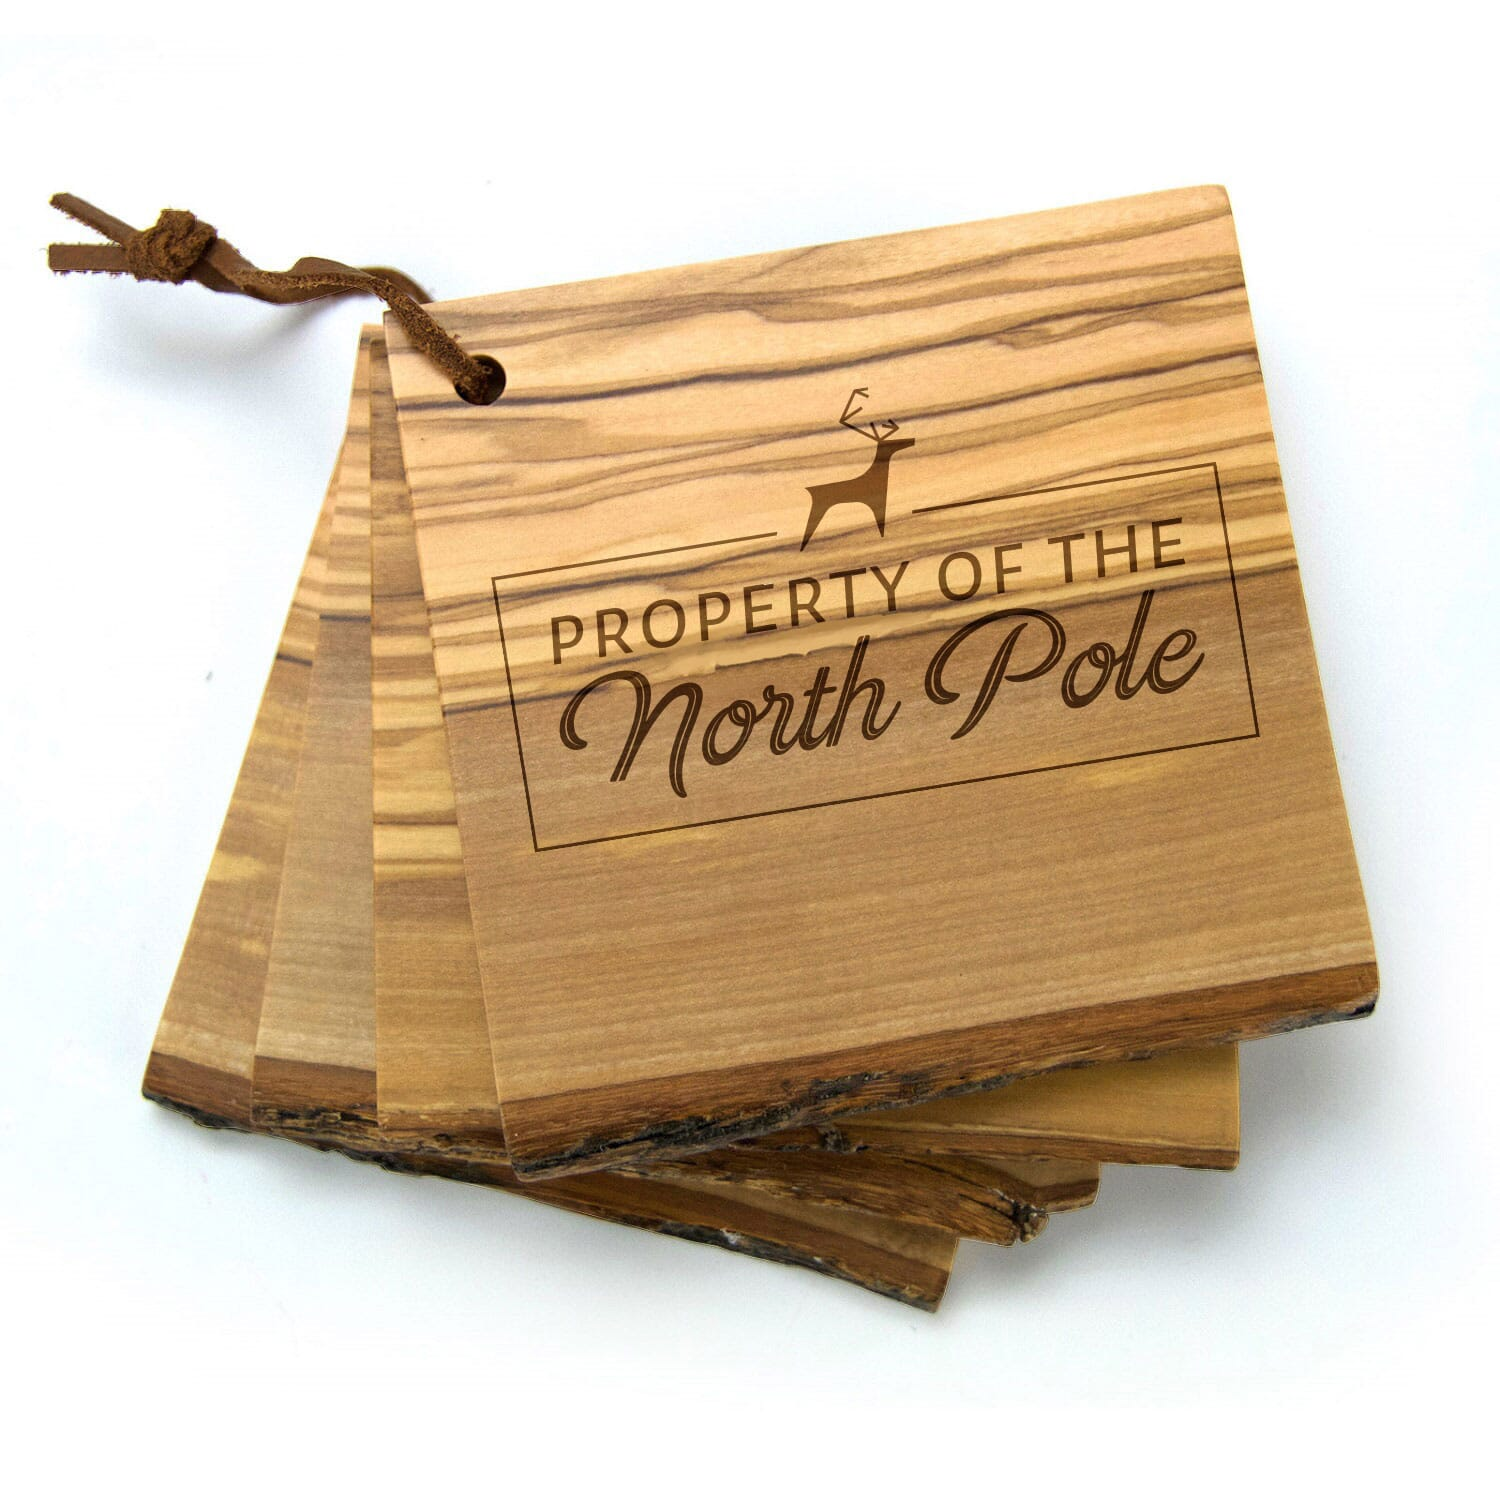 Wooden coaster set with holiday engraving